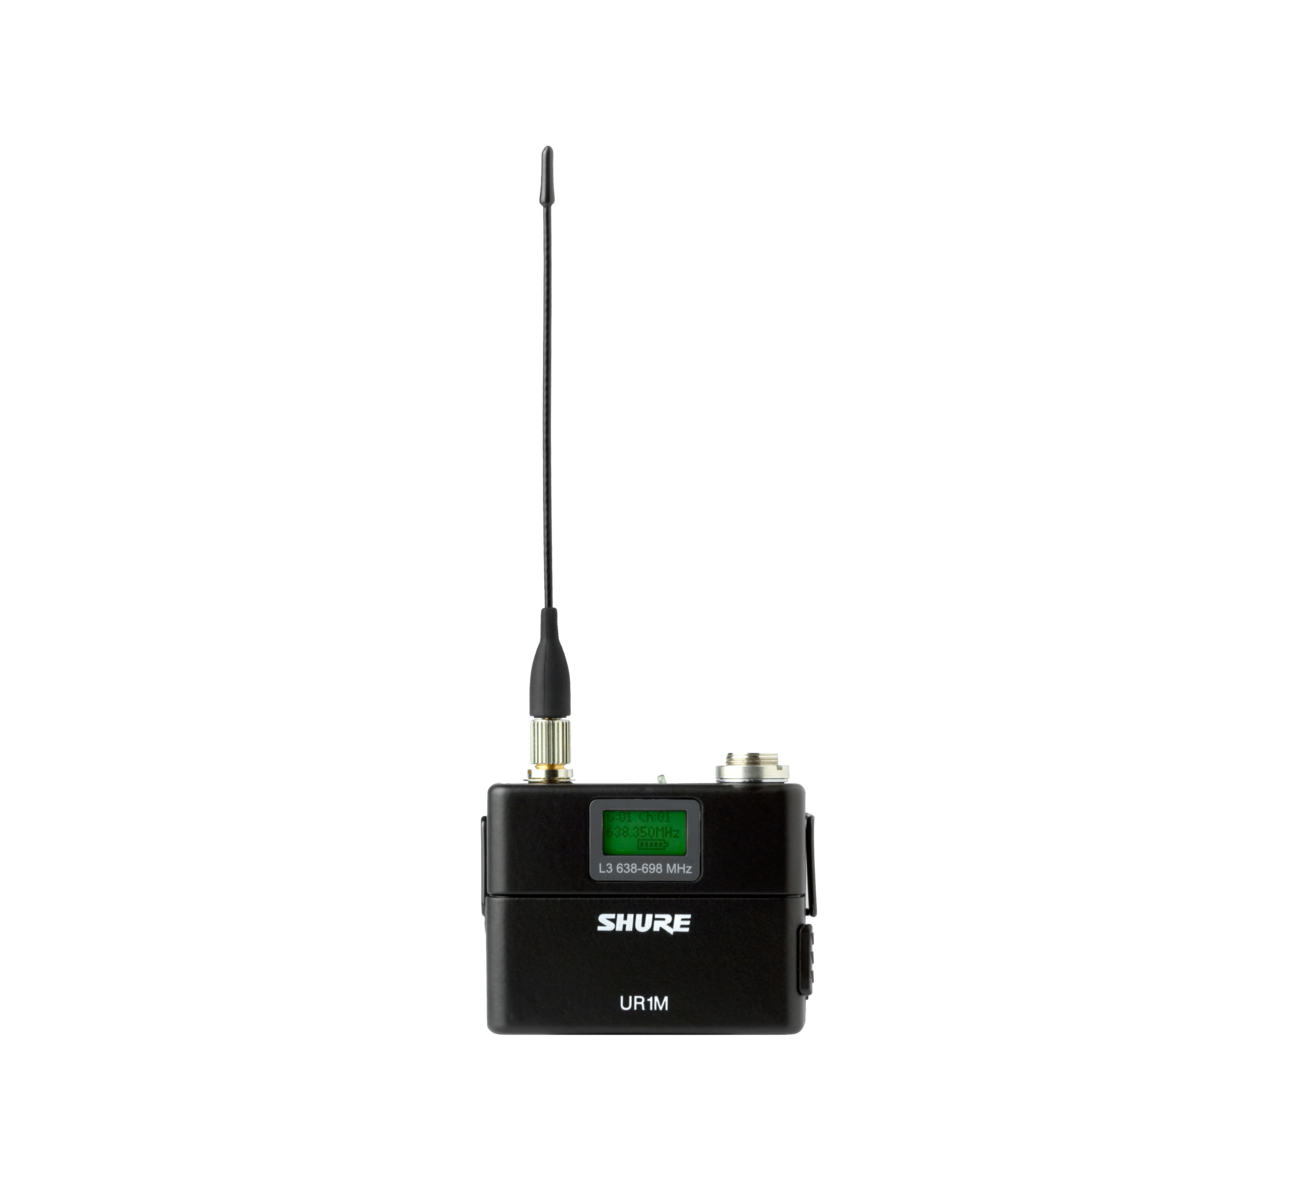 Shure UR1 L3 638-698MHz Compact Wireless Bodypack Transmitter Professional Audio